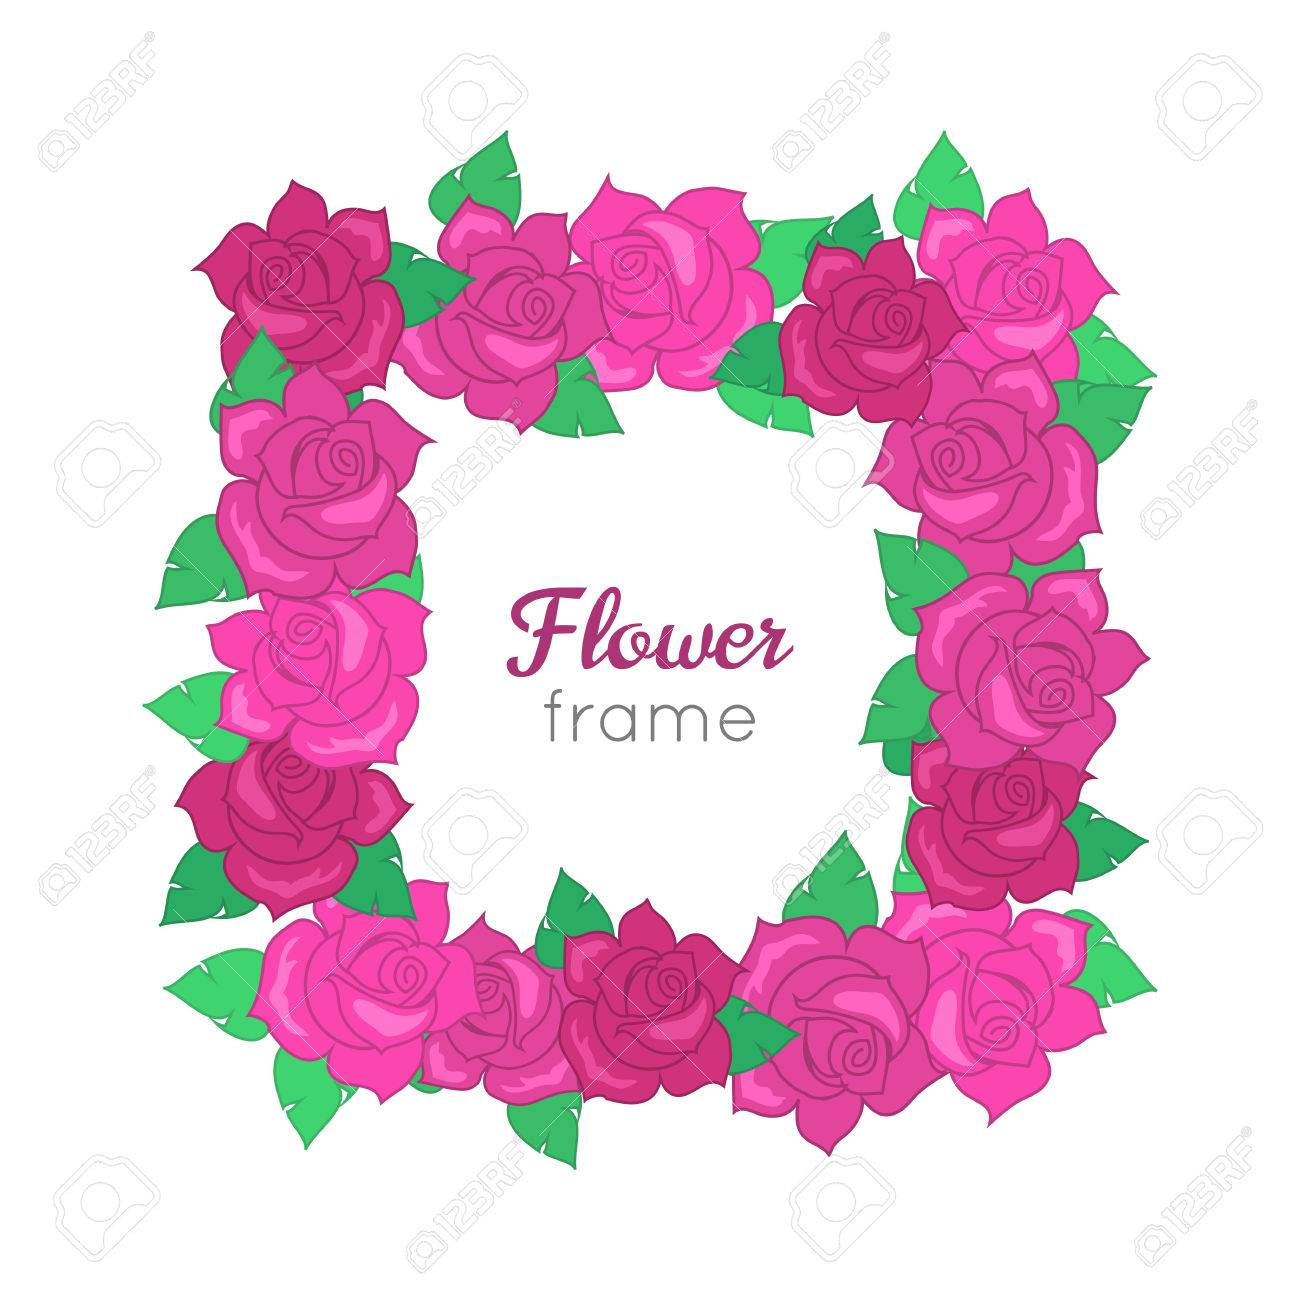 b38e813d4c Flower frame. Squar wreath of different blossoms. Green leaves. Colourful  selection of flowers